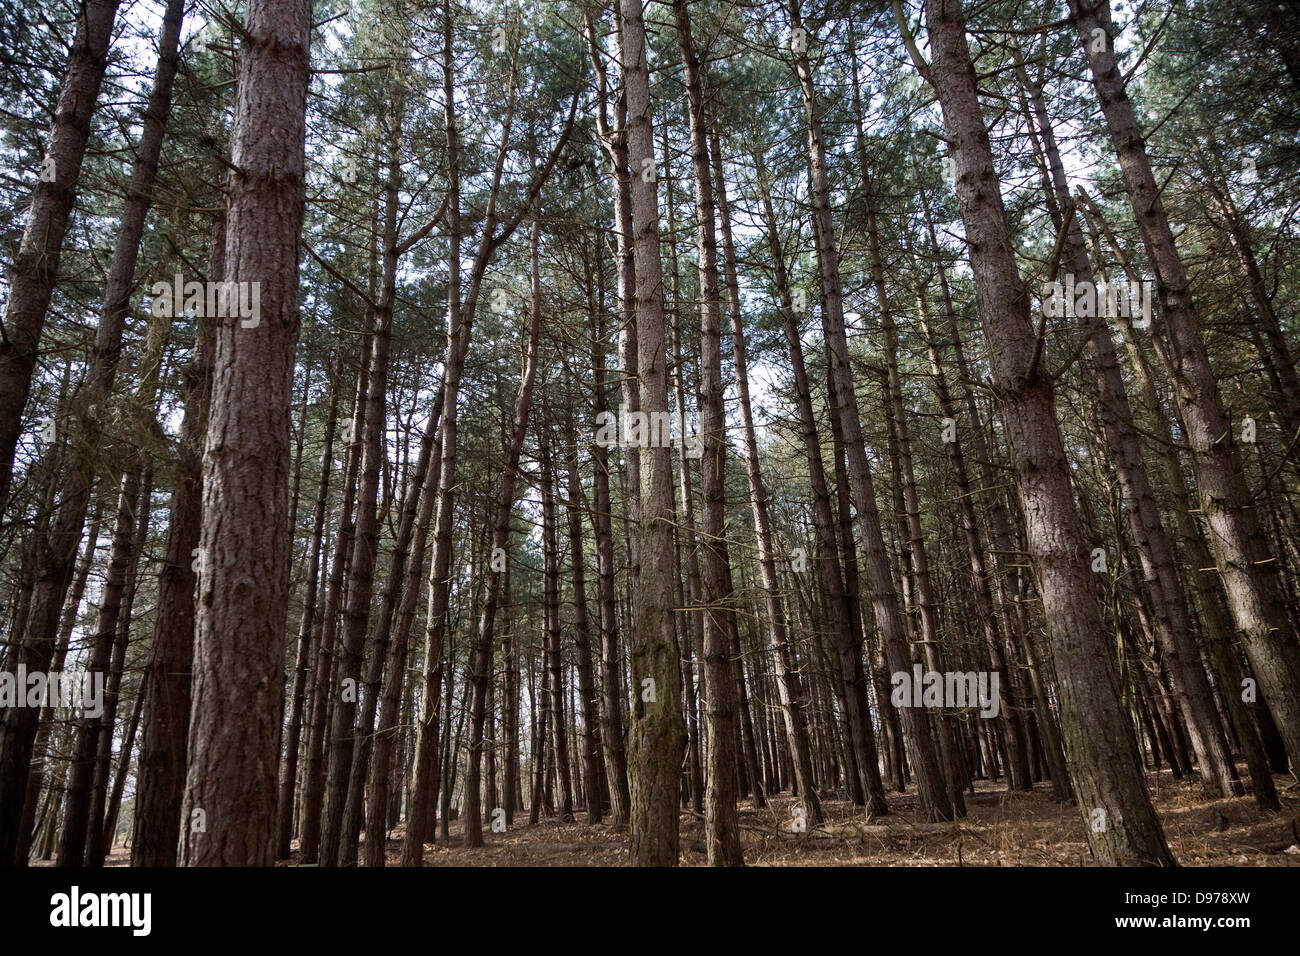 Conifer trees in Rendlesham Forest, Suffolk, England - Stock Image